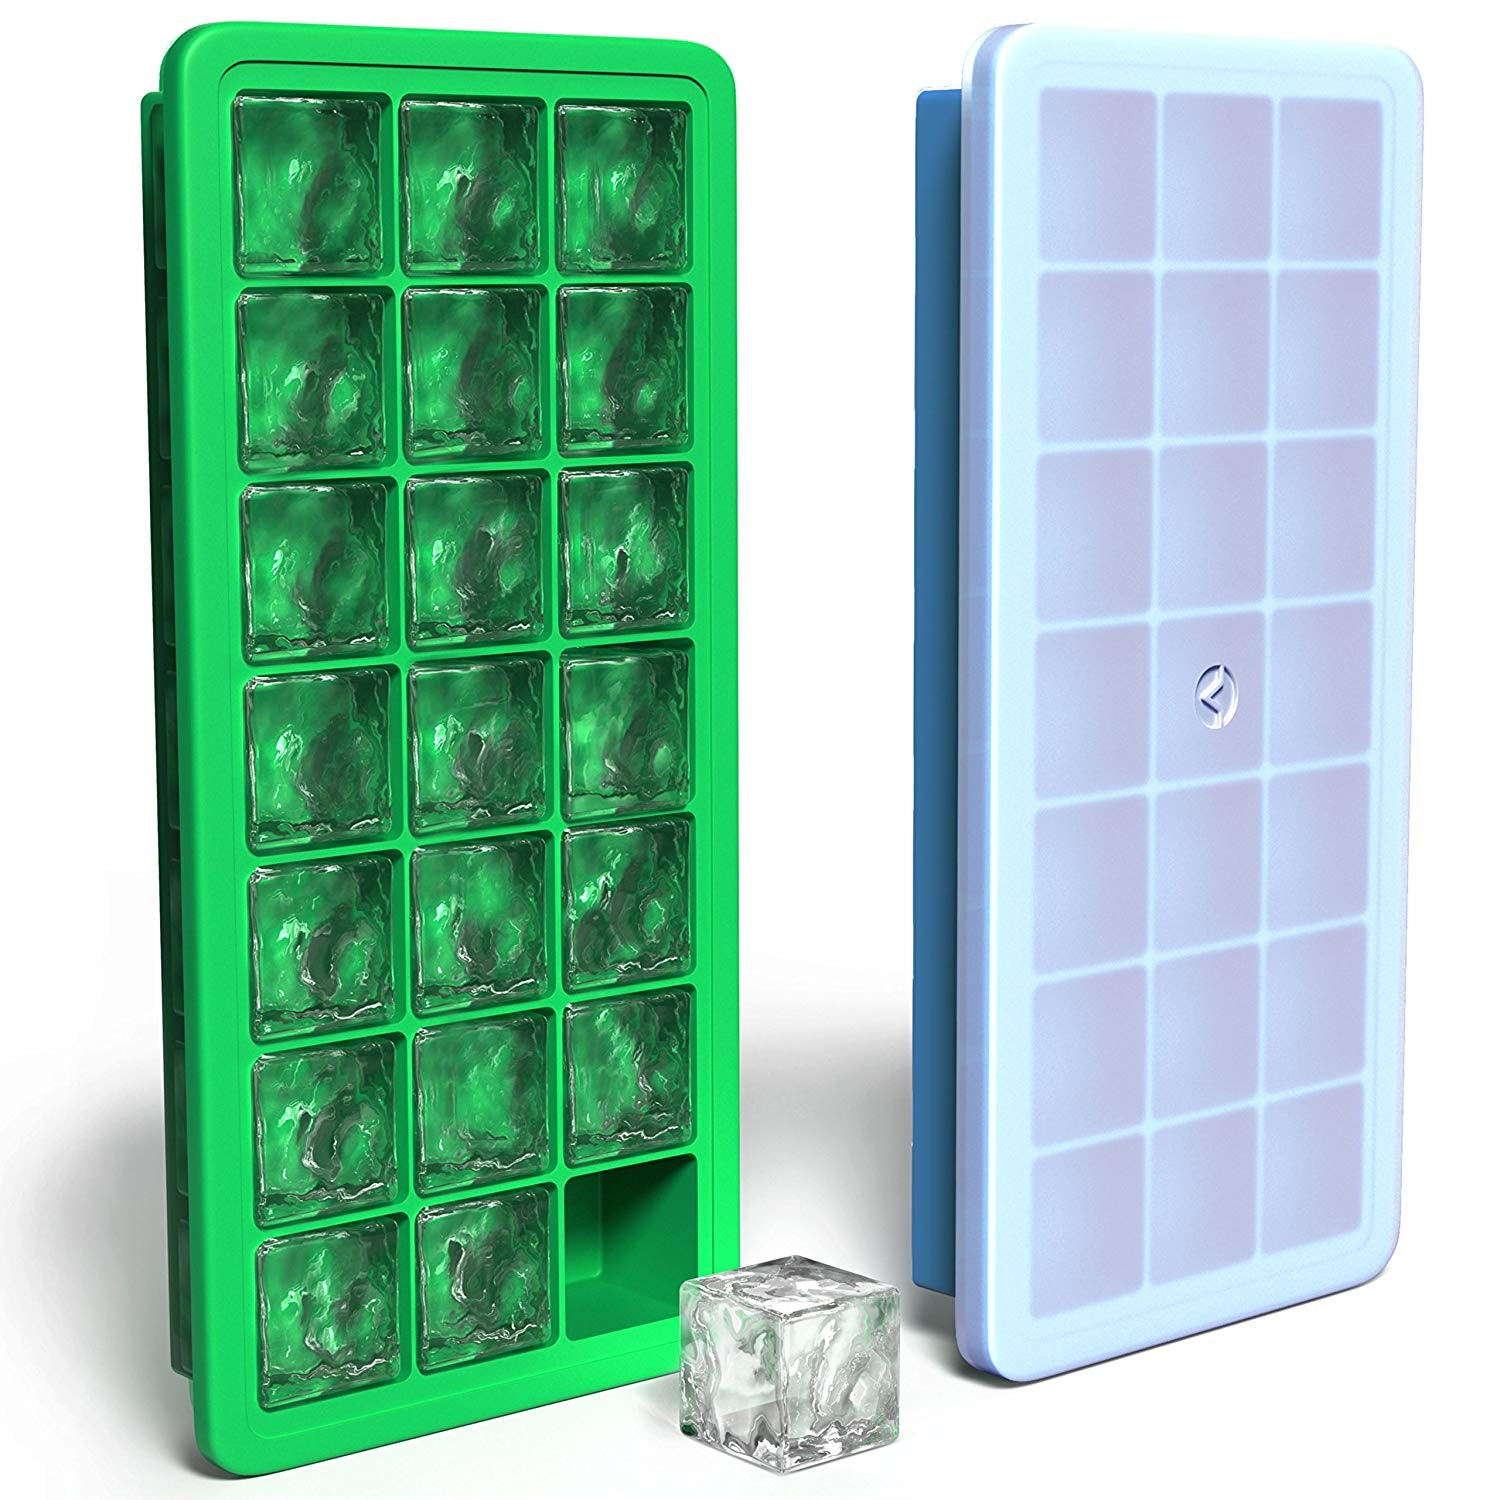 3 x Plastic Ice Cube Maker Tray Total of 42 Cubes